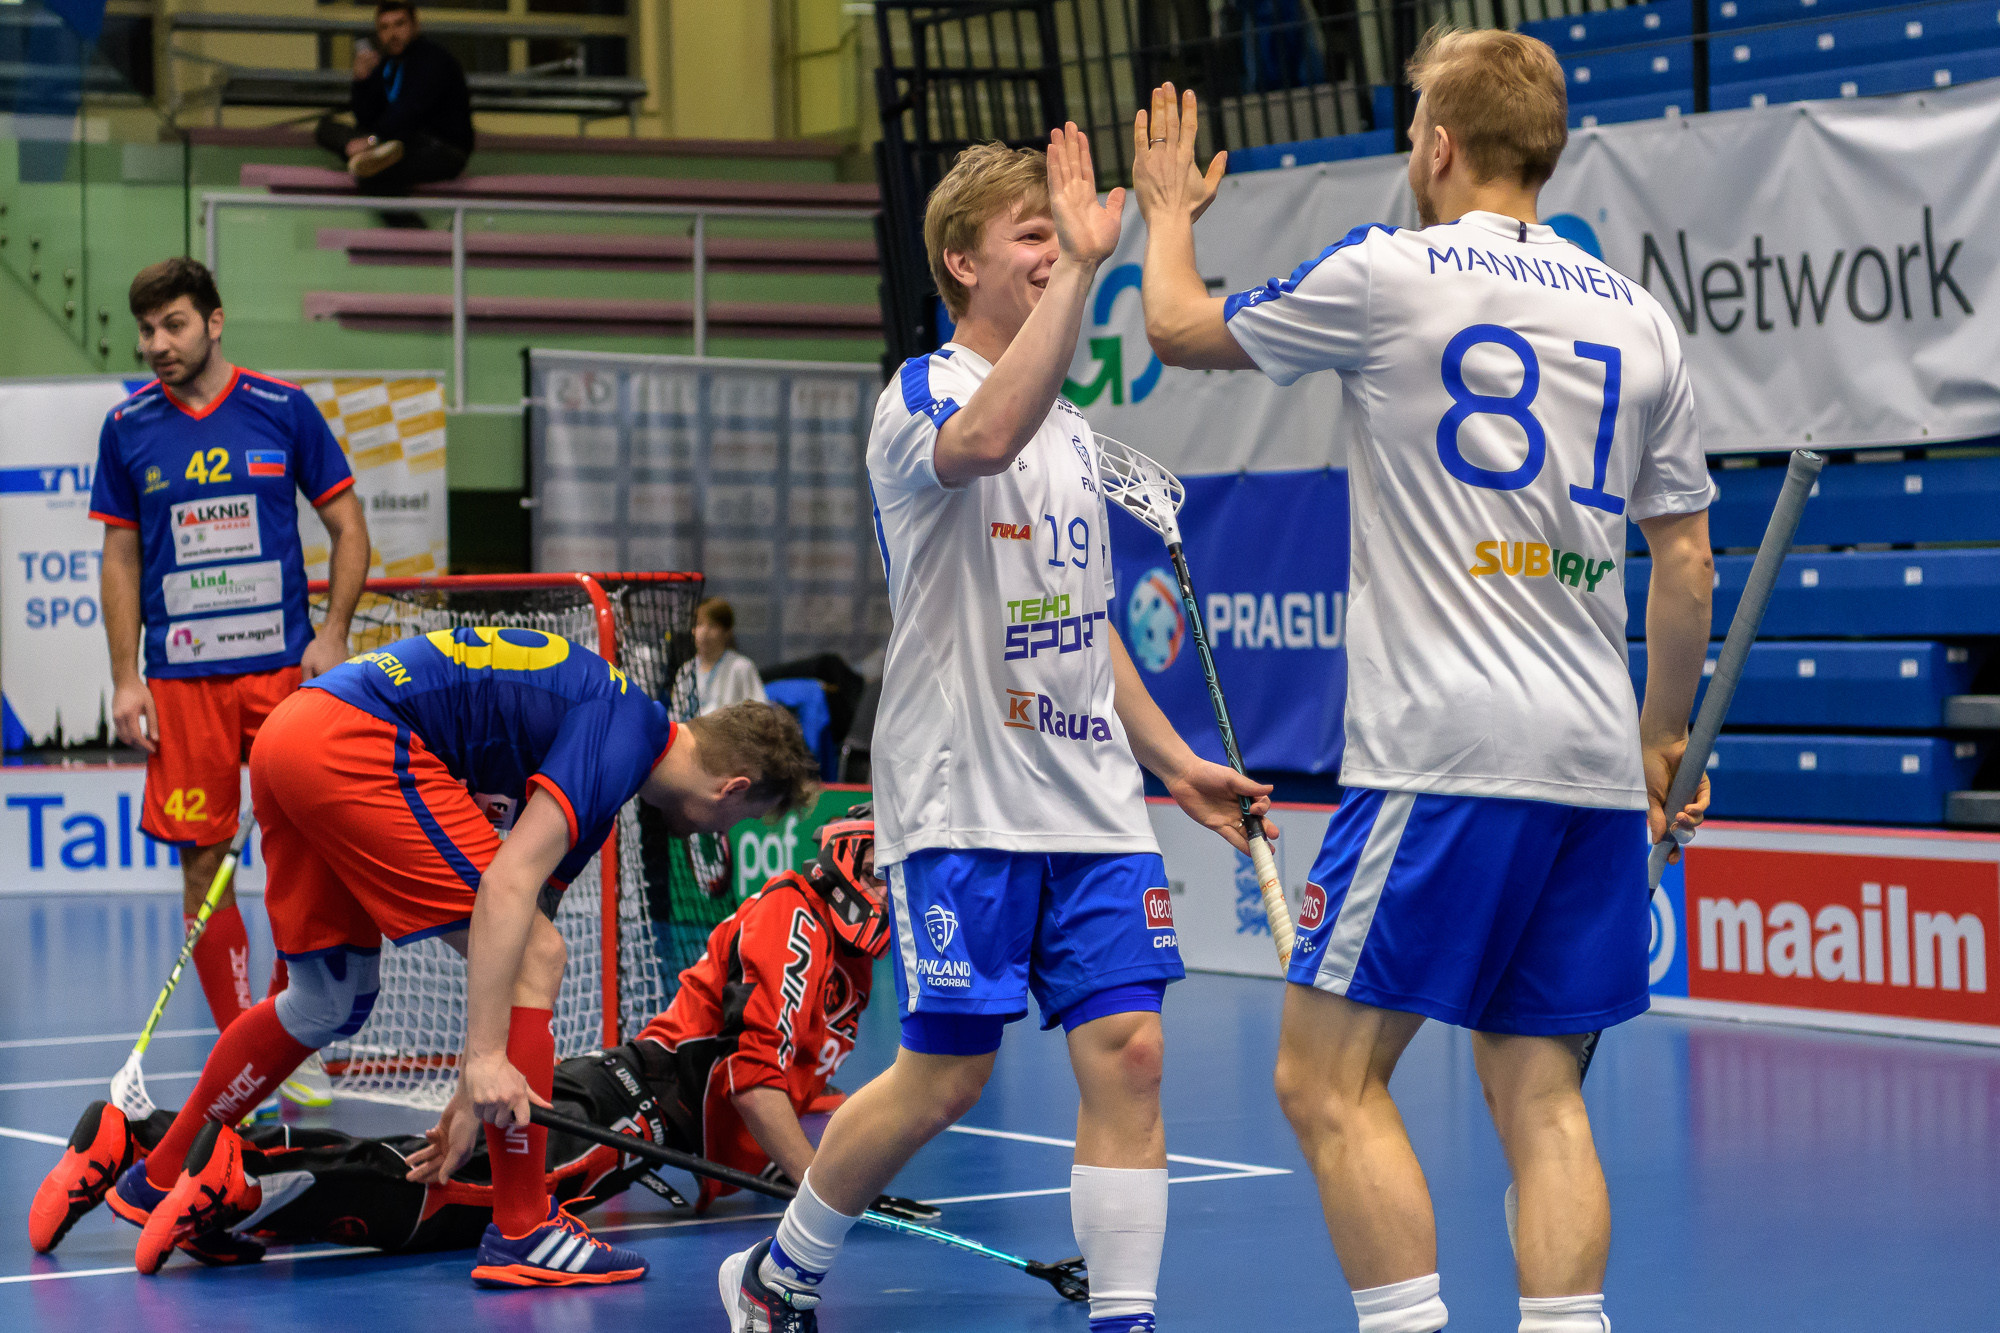 Switzerland and Finland record dominant victories at IFF European Floorball World Championship qualifiers